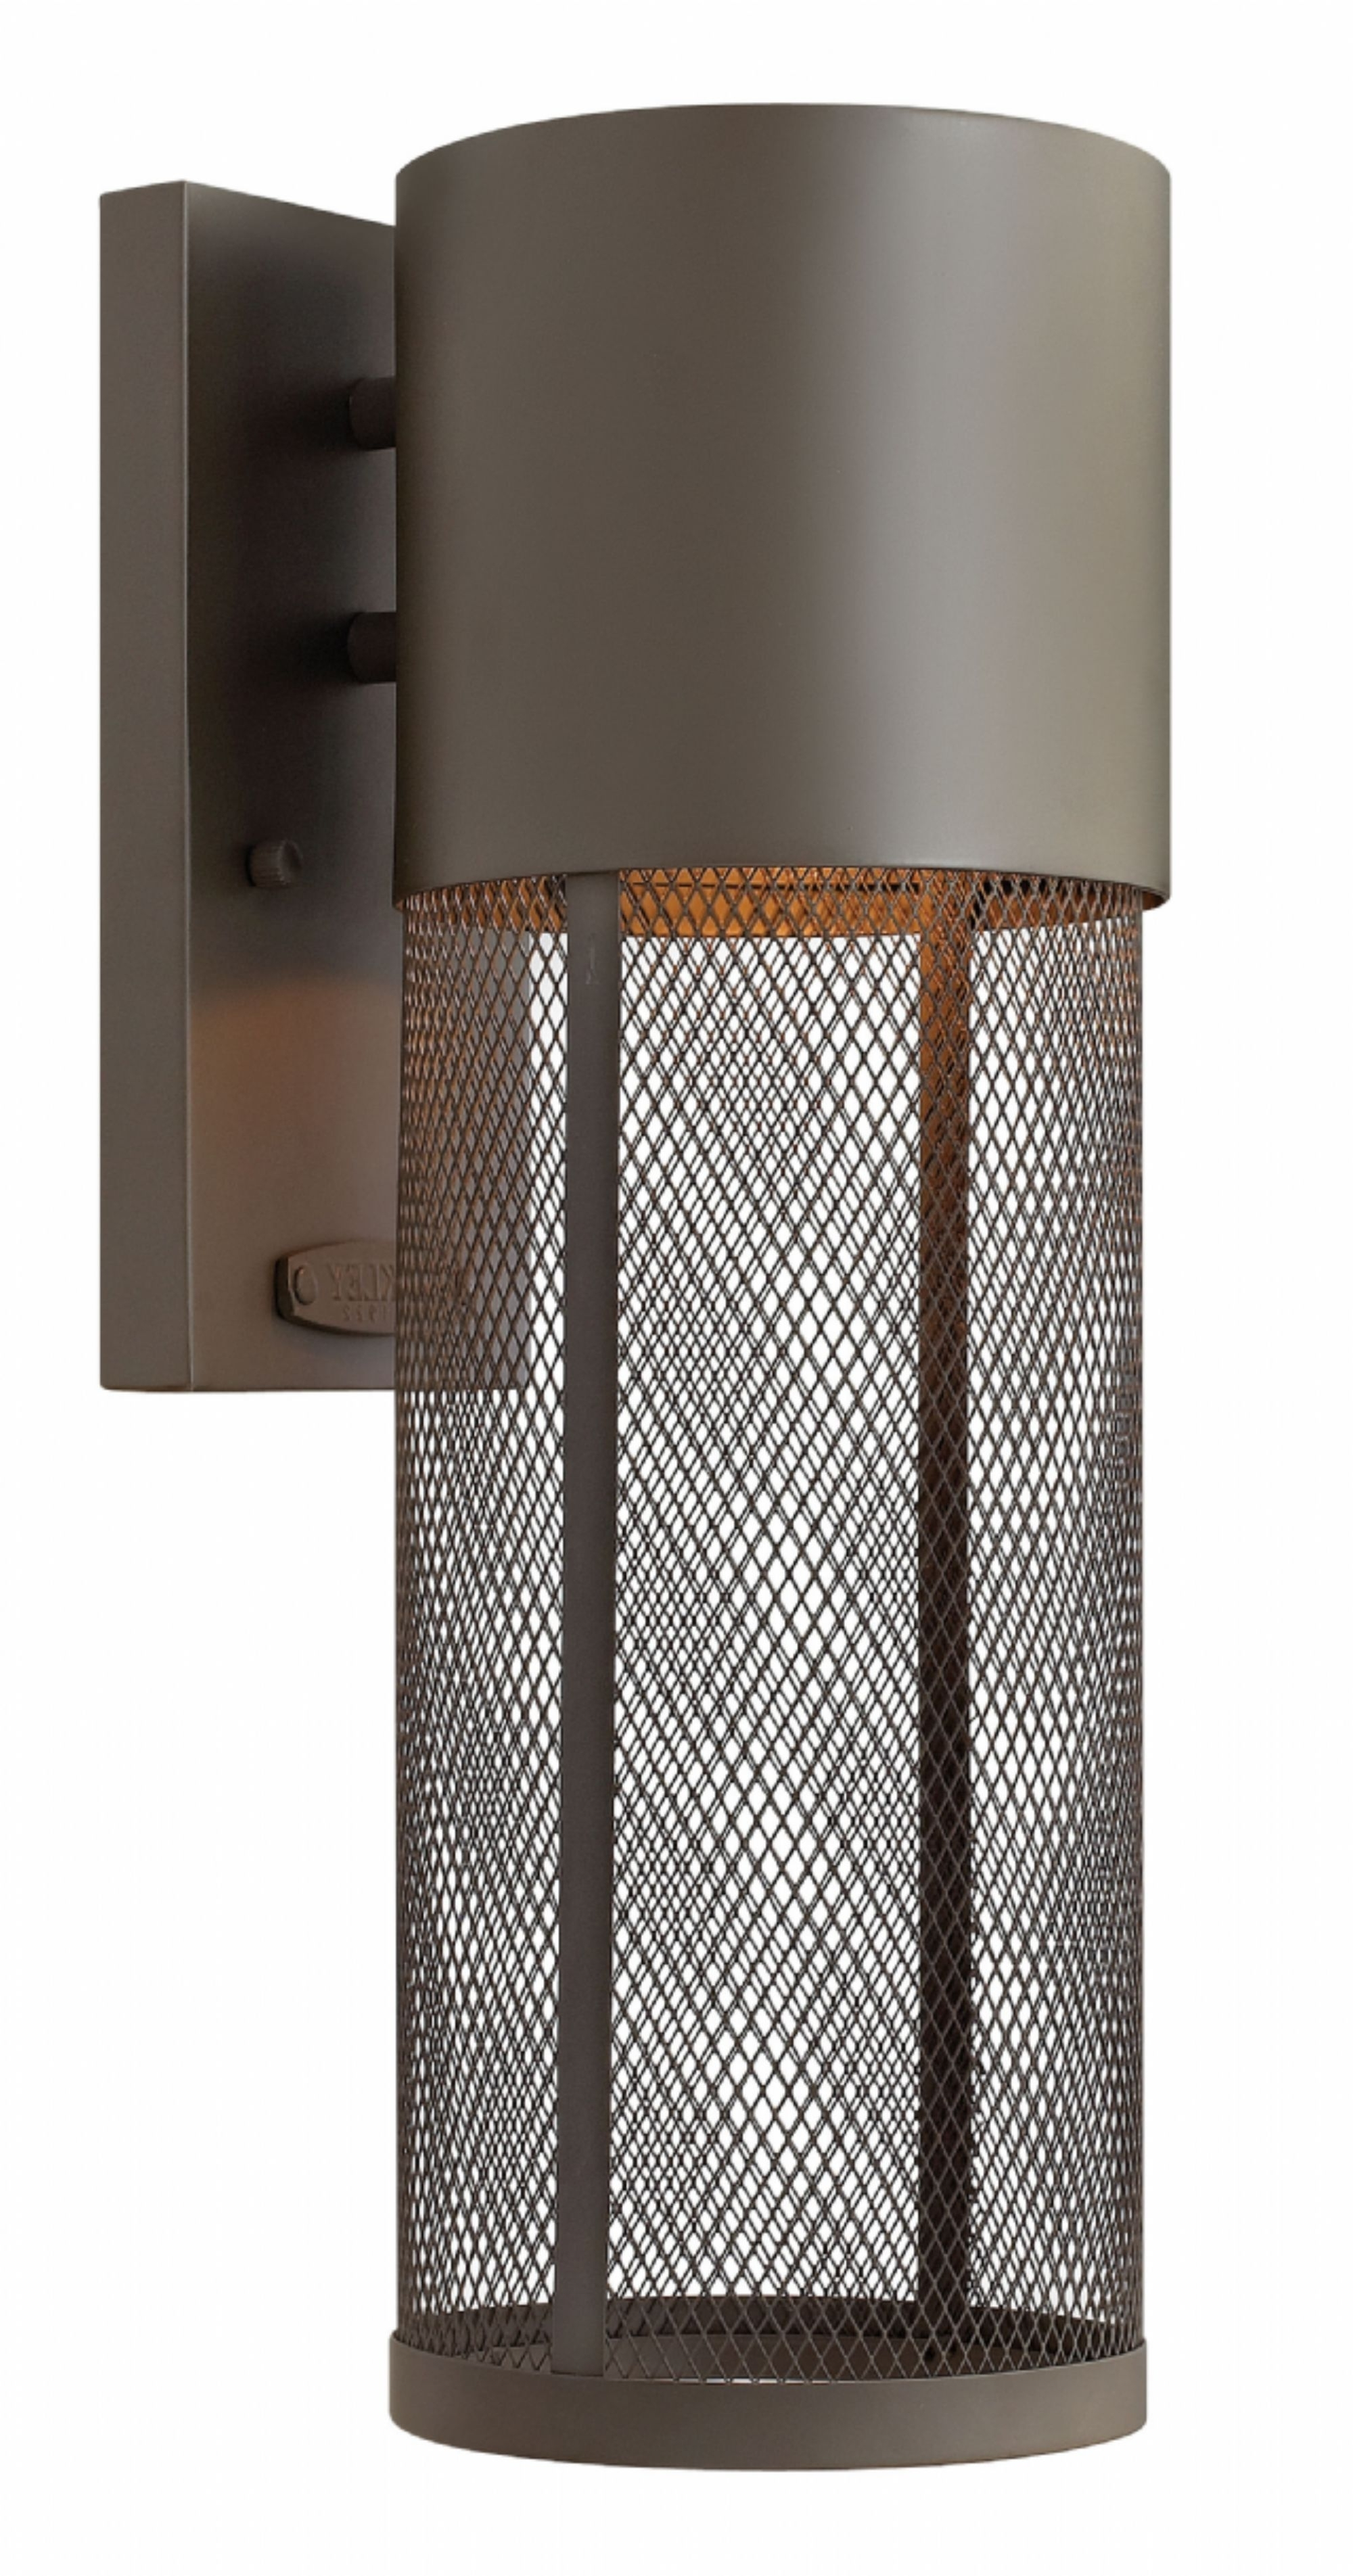 2018 Modern Led Hinkley Lighting With Regard To Buckeye Bronze Aria > Exterior Wall Mount (View 17 of 20)